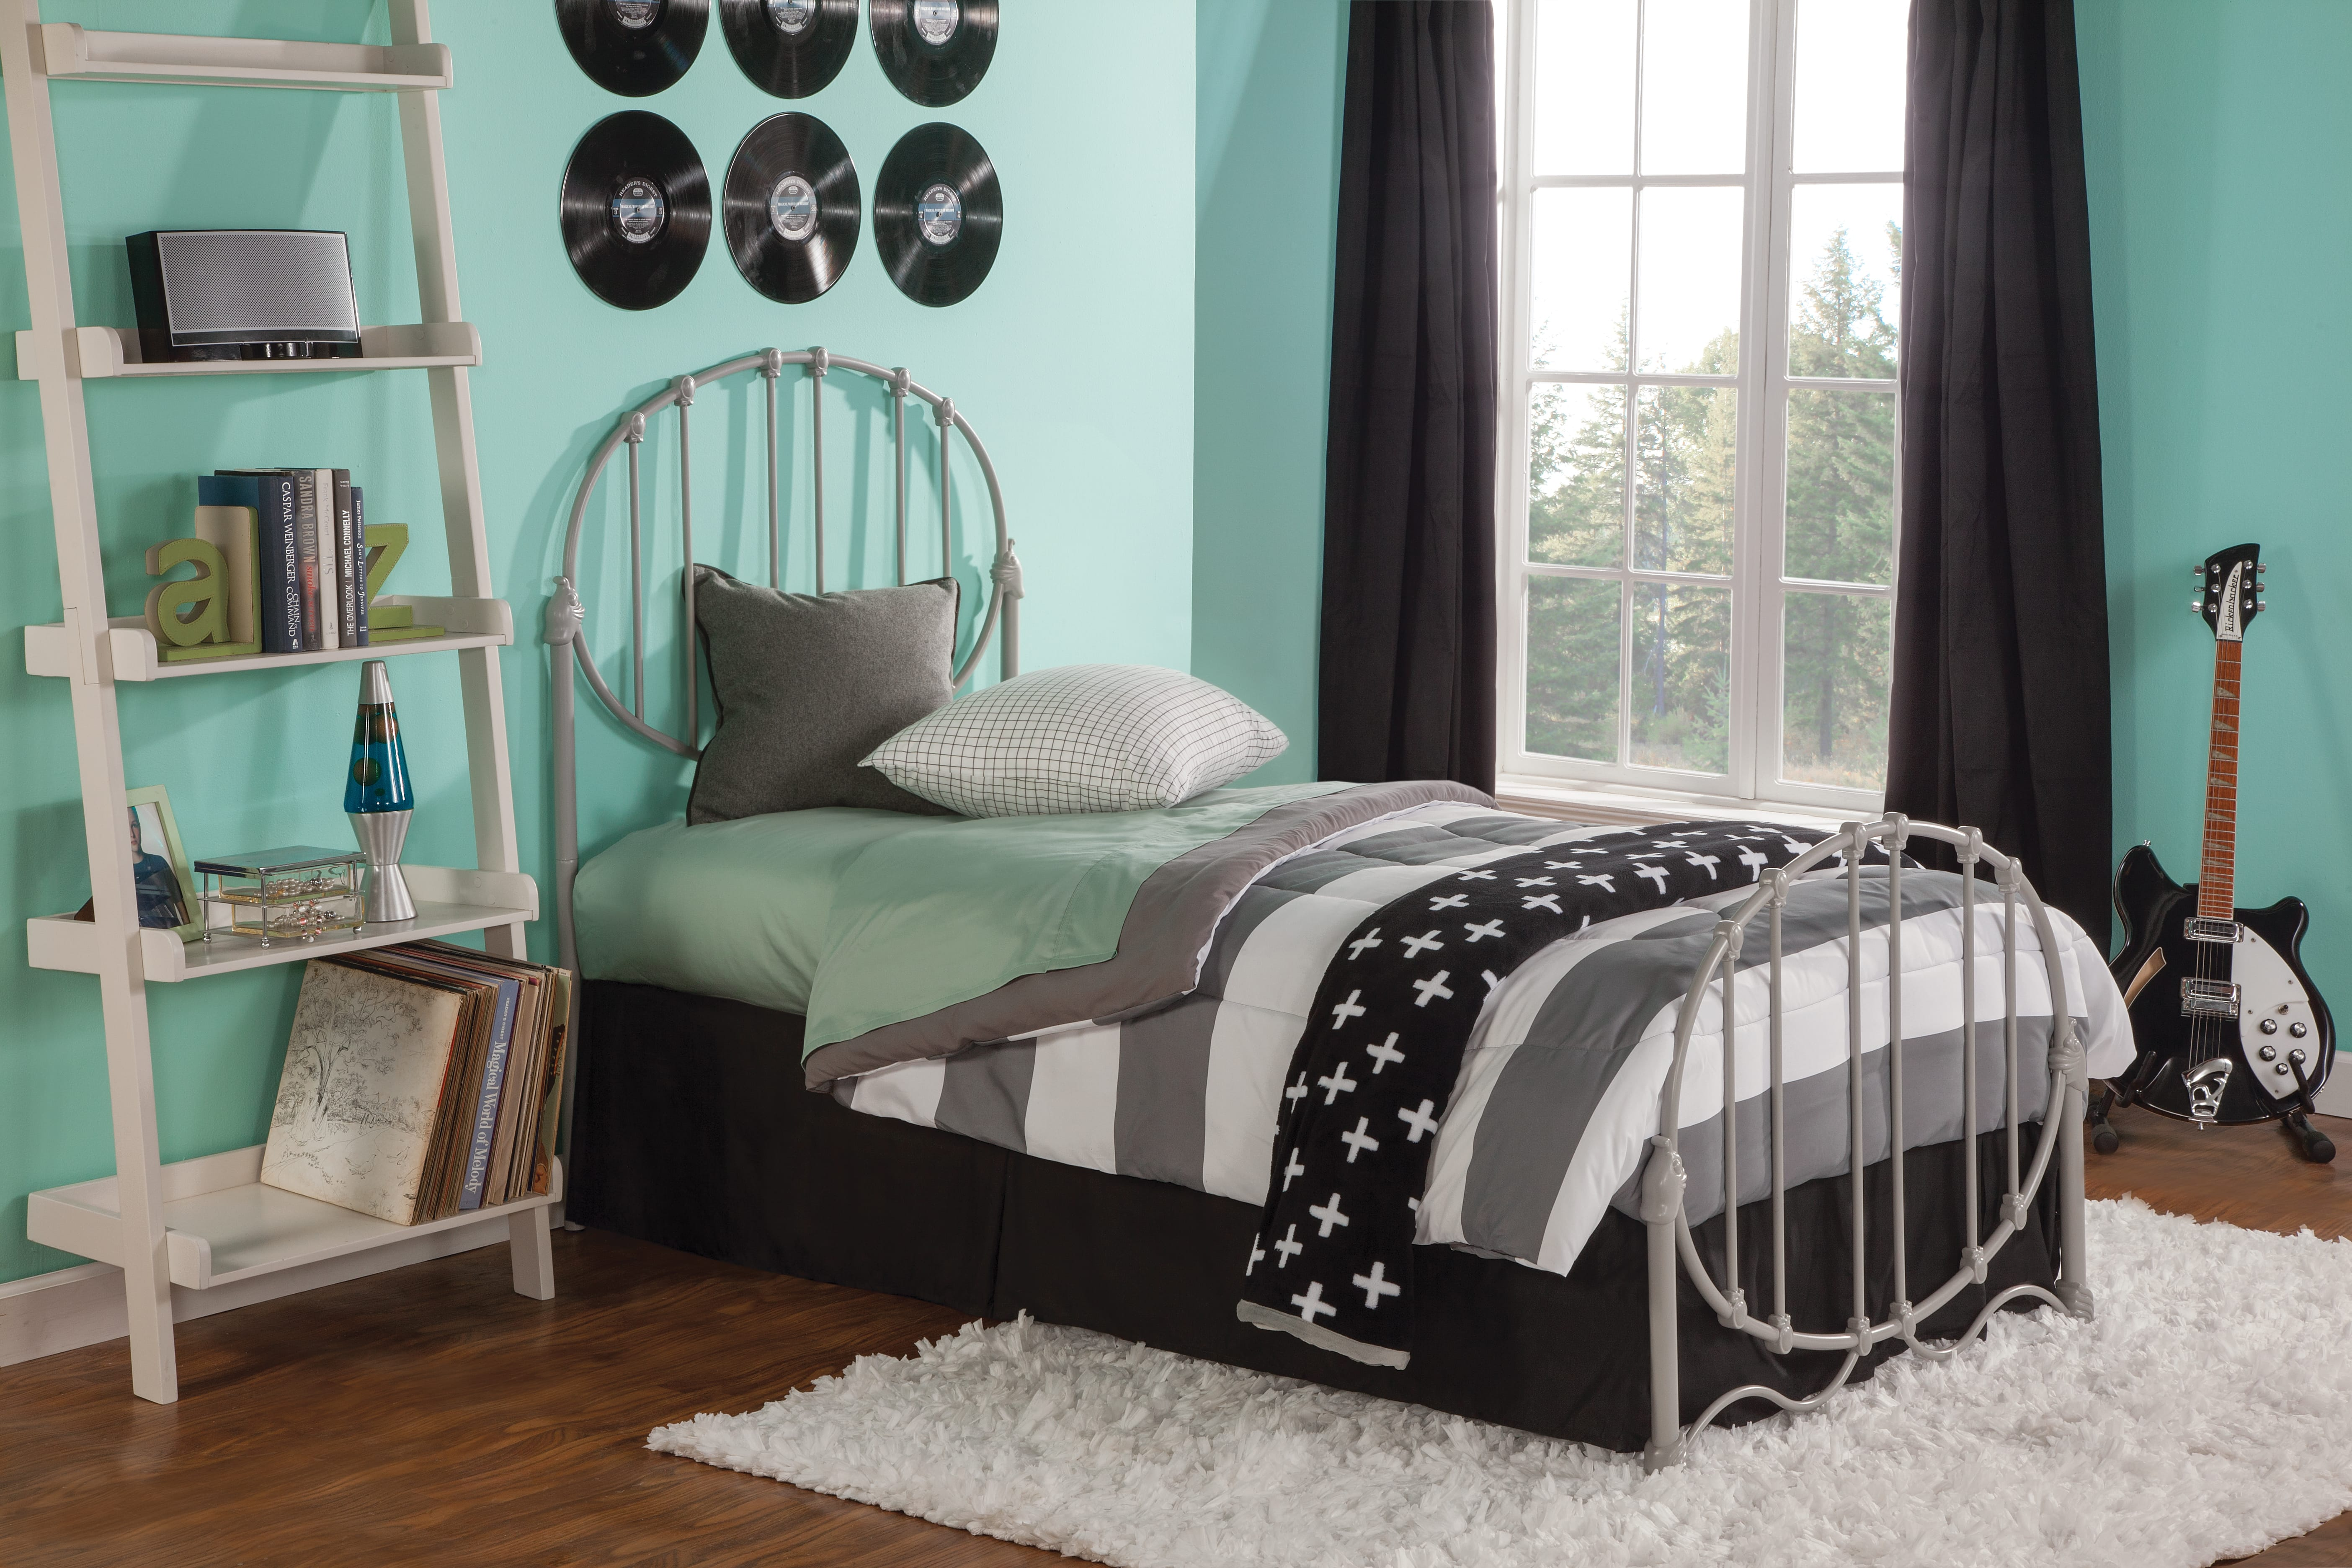 Fashion Bed Emory Fashion Kids™ Bed